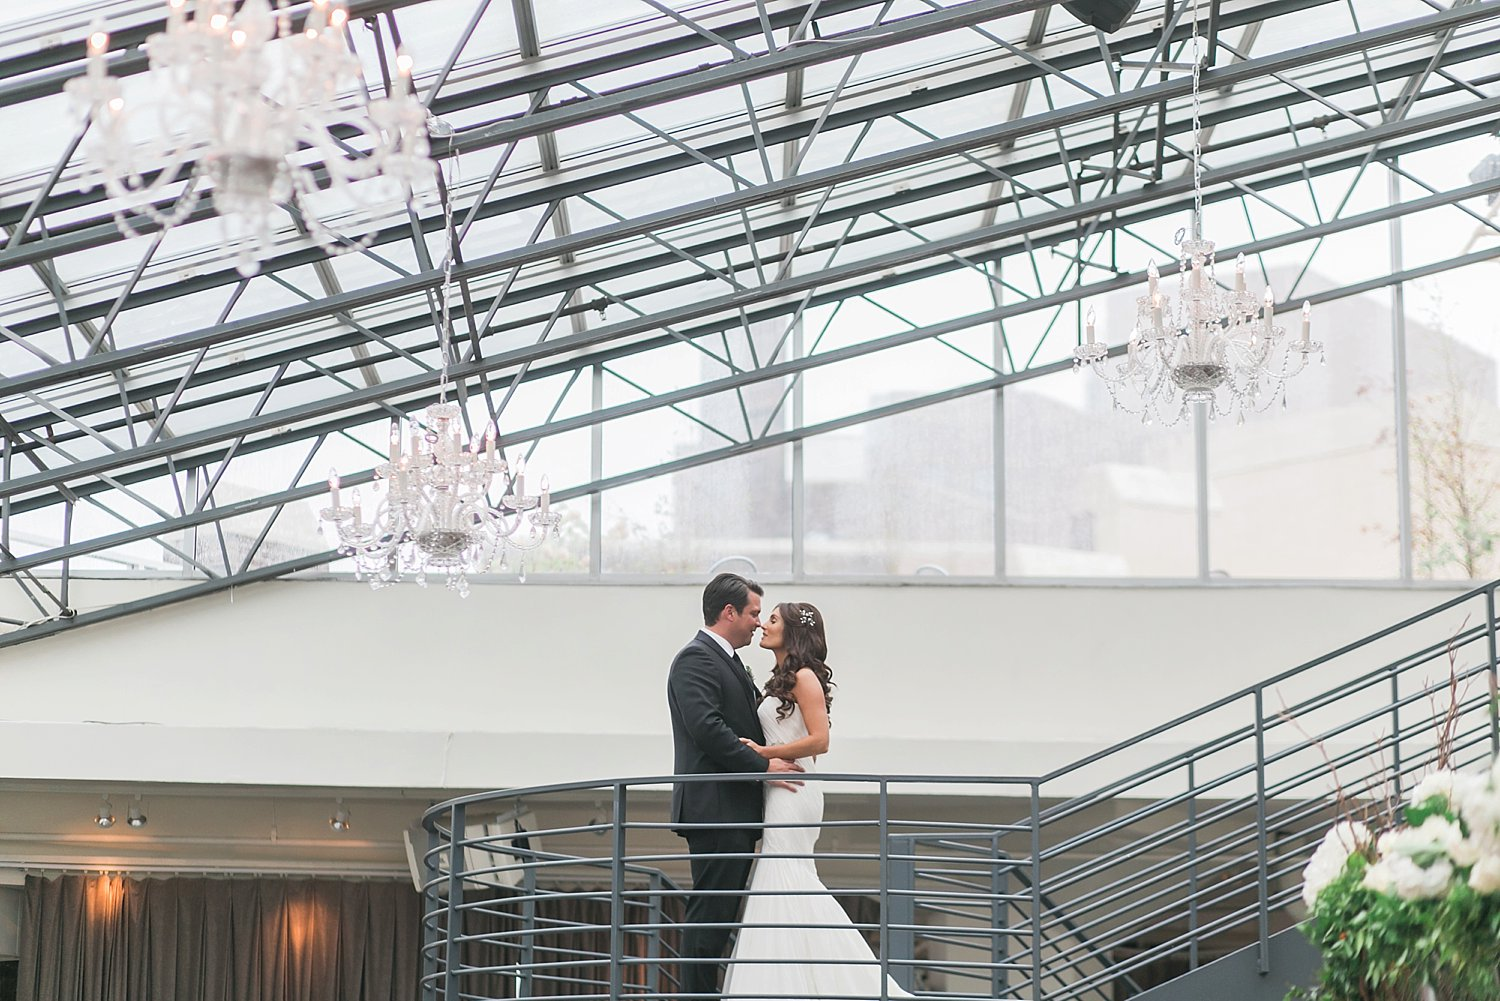 nyc-wedding-photography-nj-tri-state-cinematography-intothestory-by-moo-jae_0207.jpg